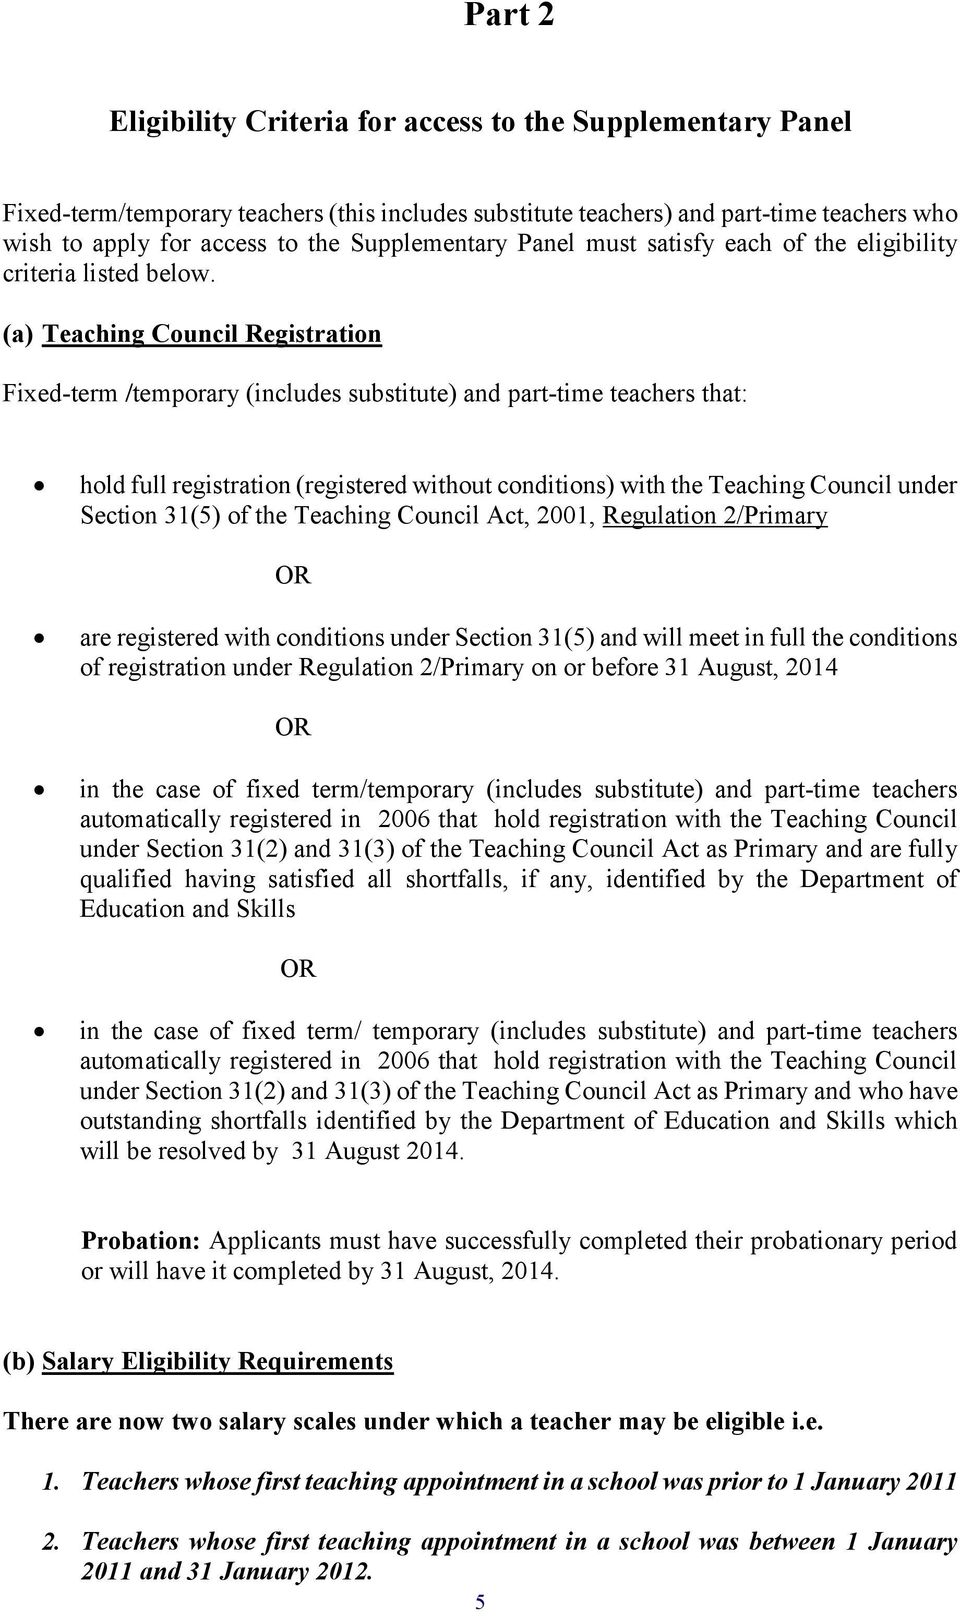 (a) Teaching Council Registration Fixed-term /temporary (includes substitute) and part-time teachers that: hold full registration (registered without conditions) with the Teaching Council under